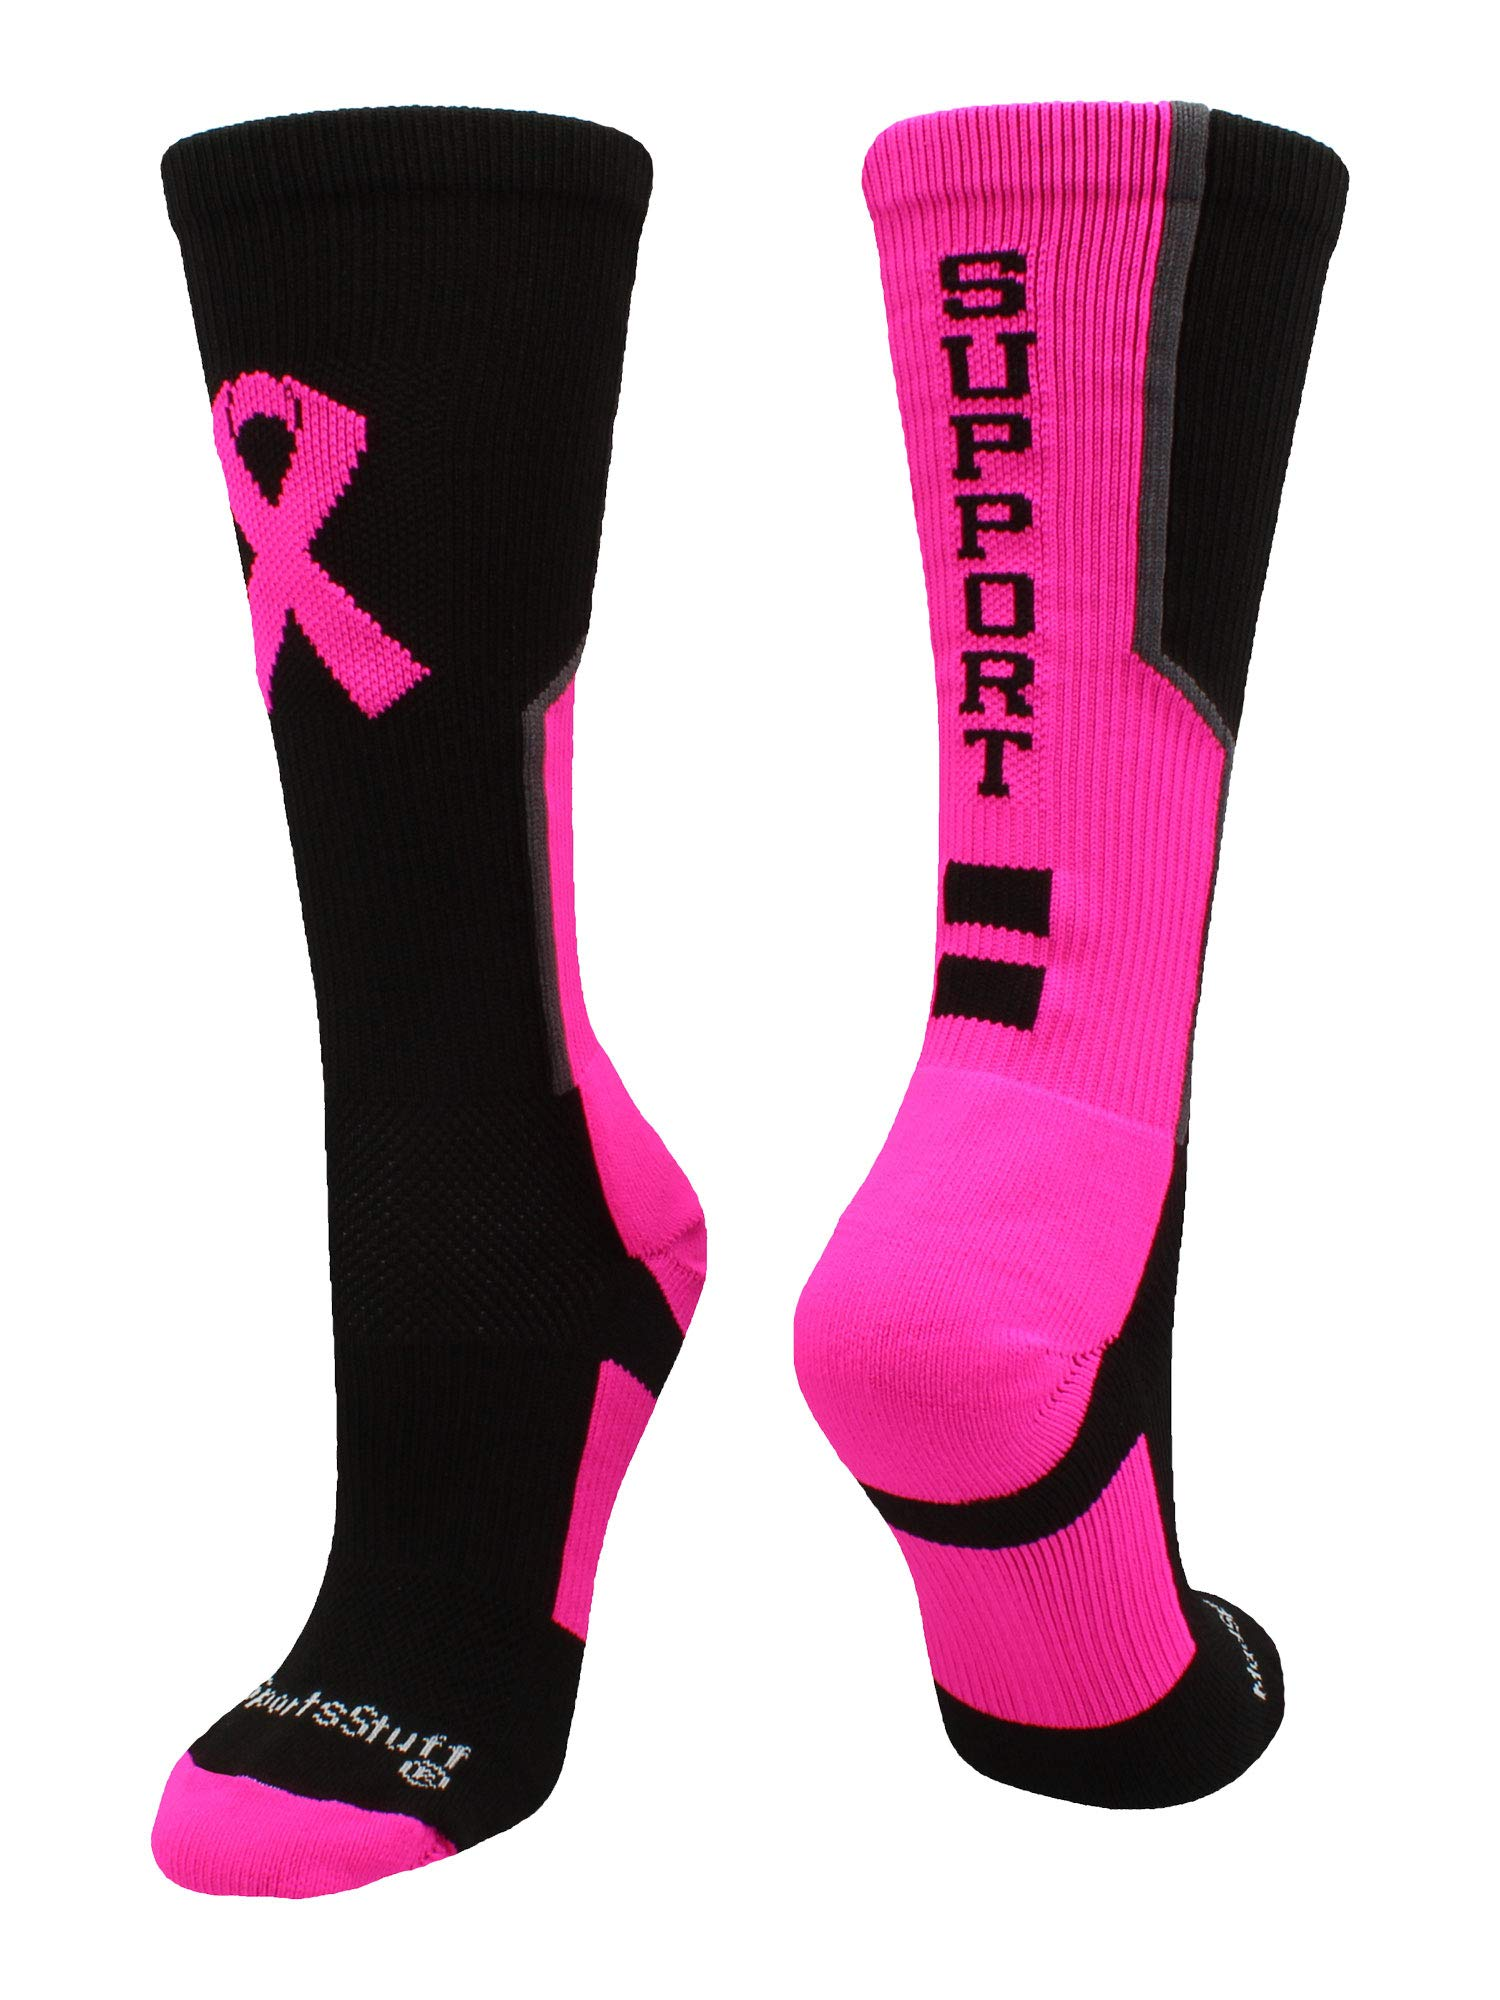 MadSportsStuff Breast Cancer Awareness Support Crew